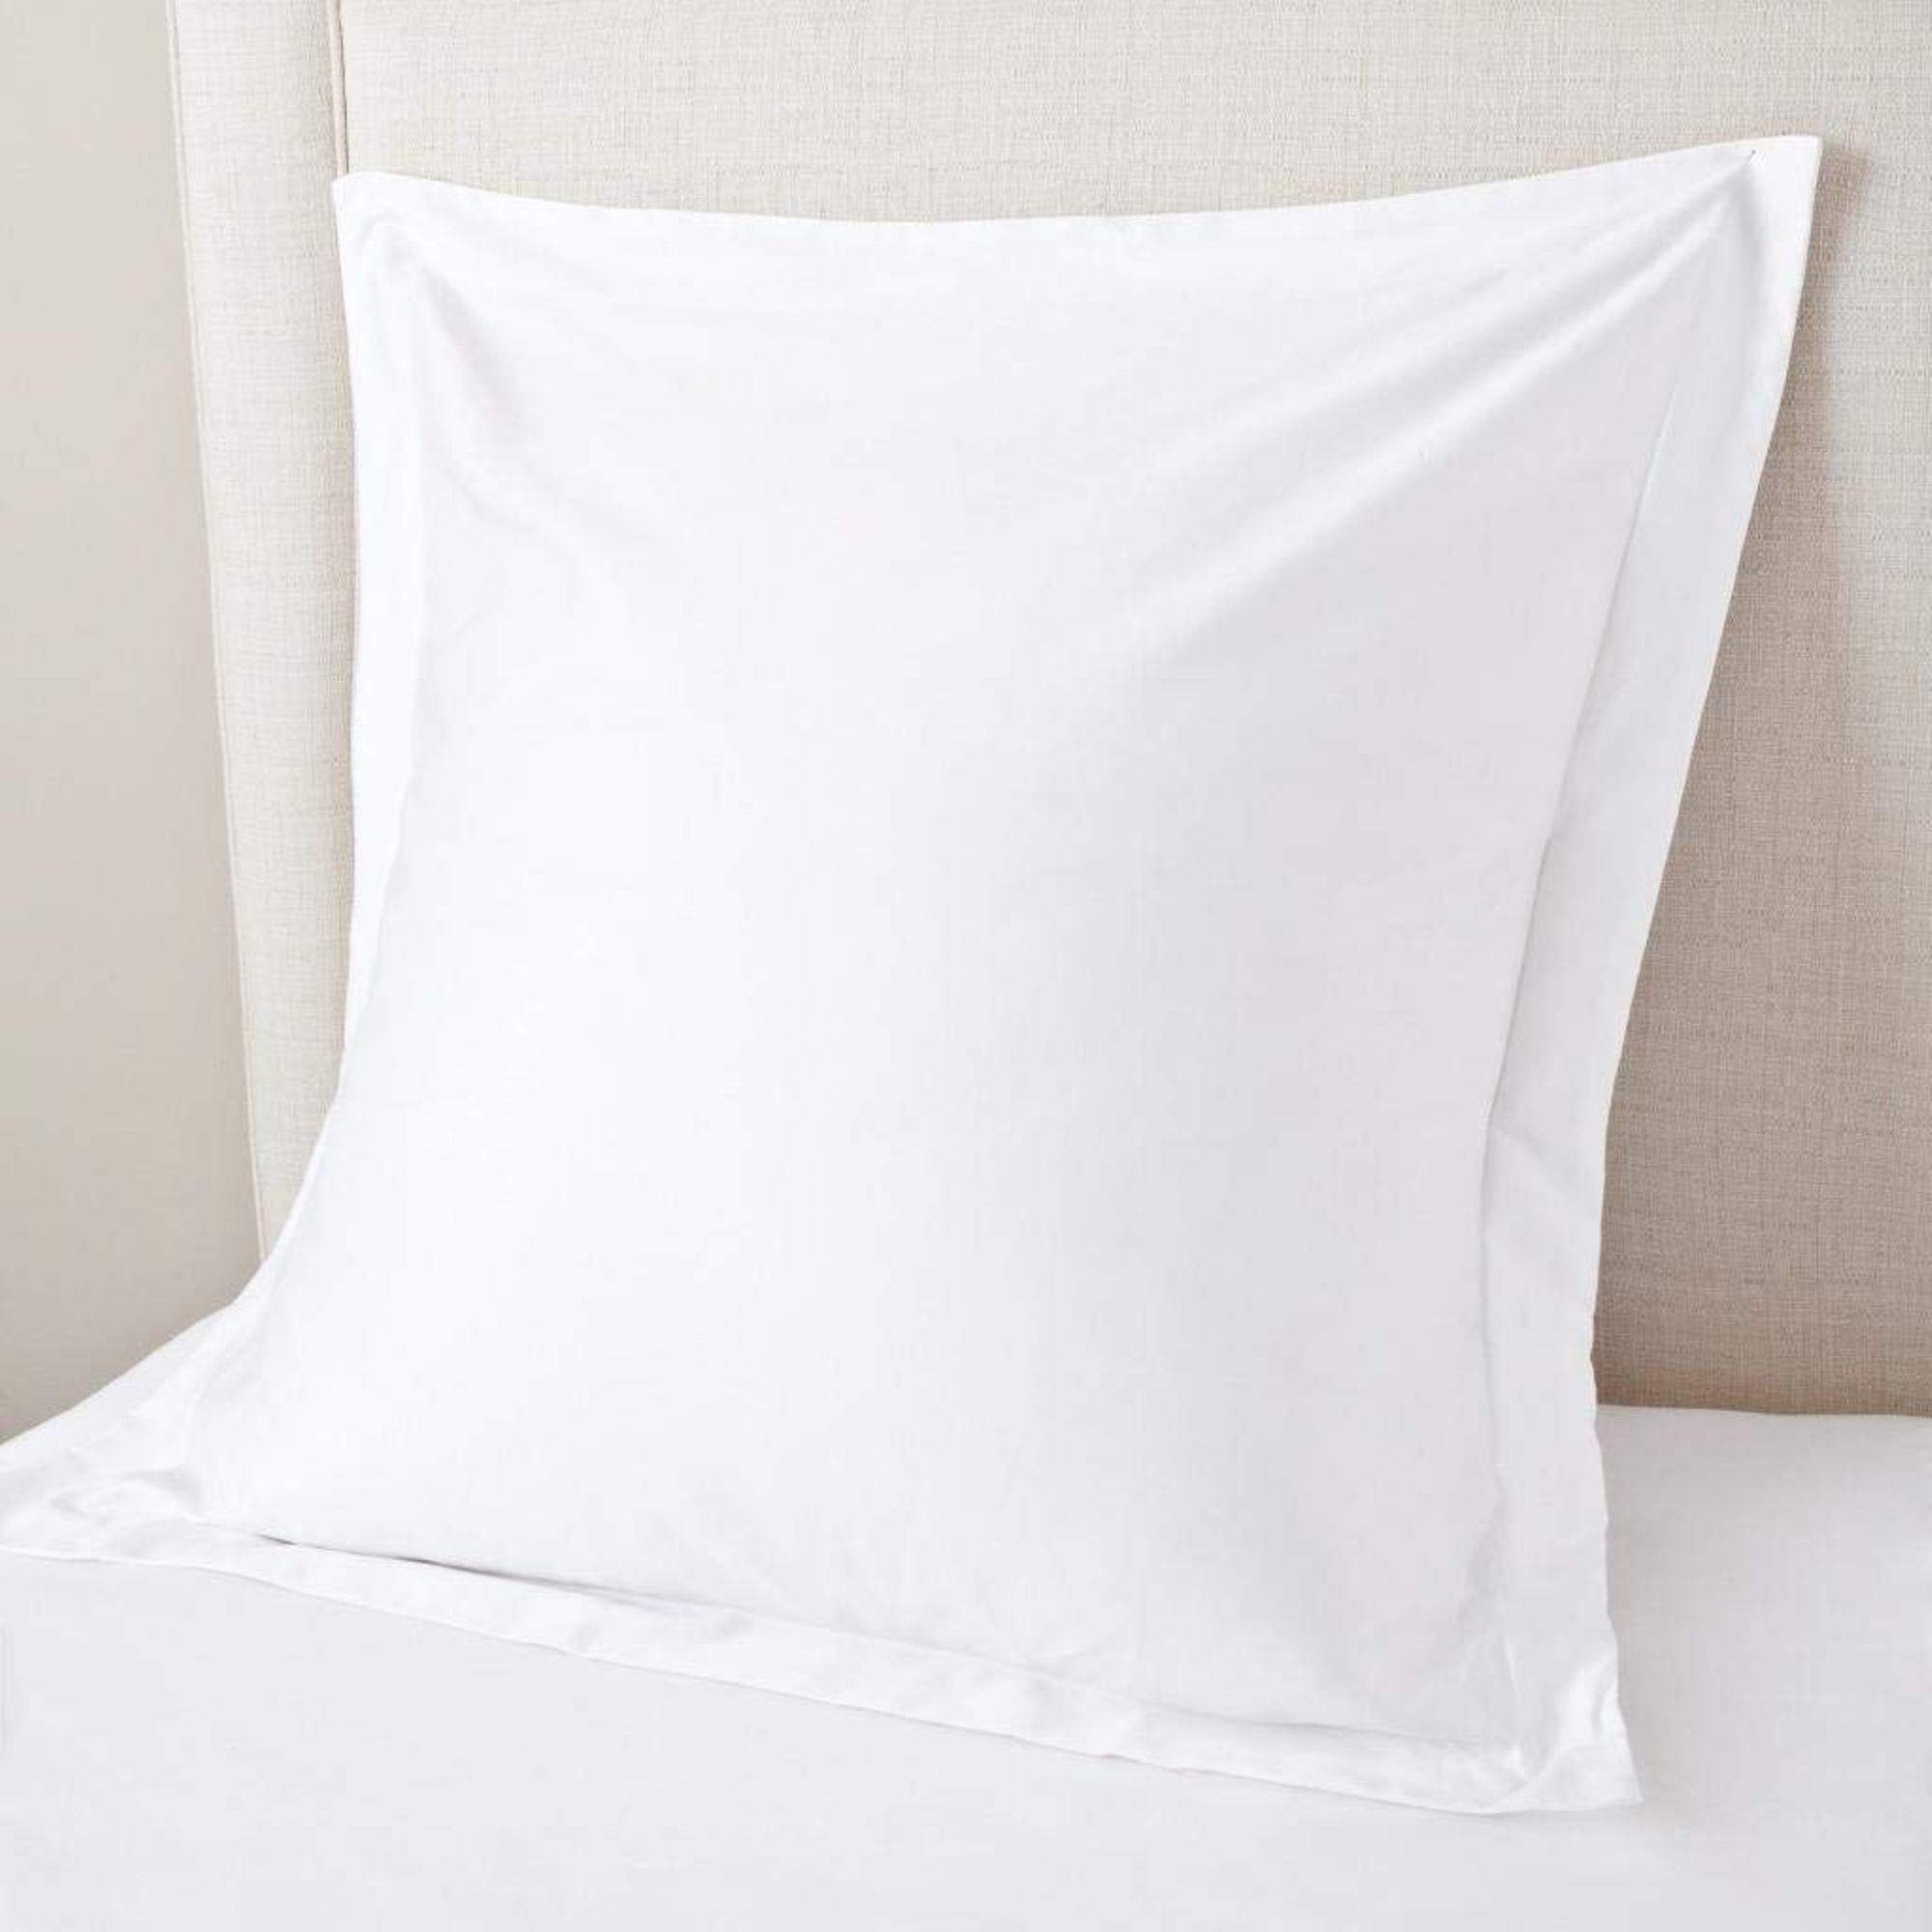 Crown Collection White Solid Natural Egyptian Cotton 600- Thread Count European Square Pillow Shams Cover 26'' x 26'' inch Euro Pillow sham set of 2pcs Hotel Quality